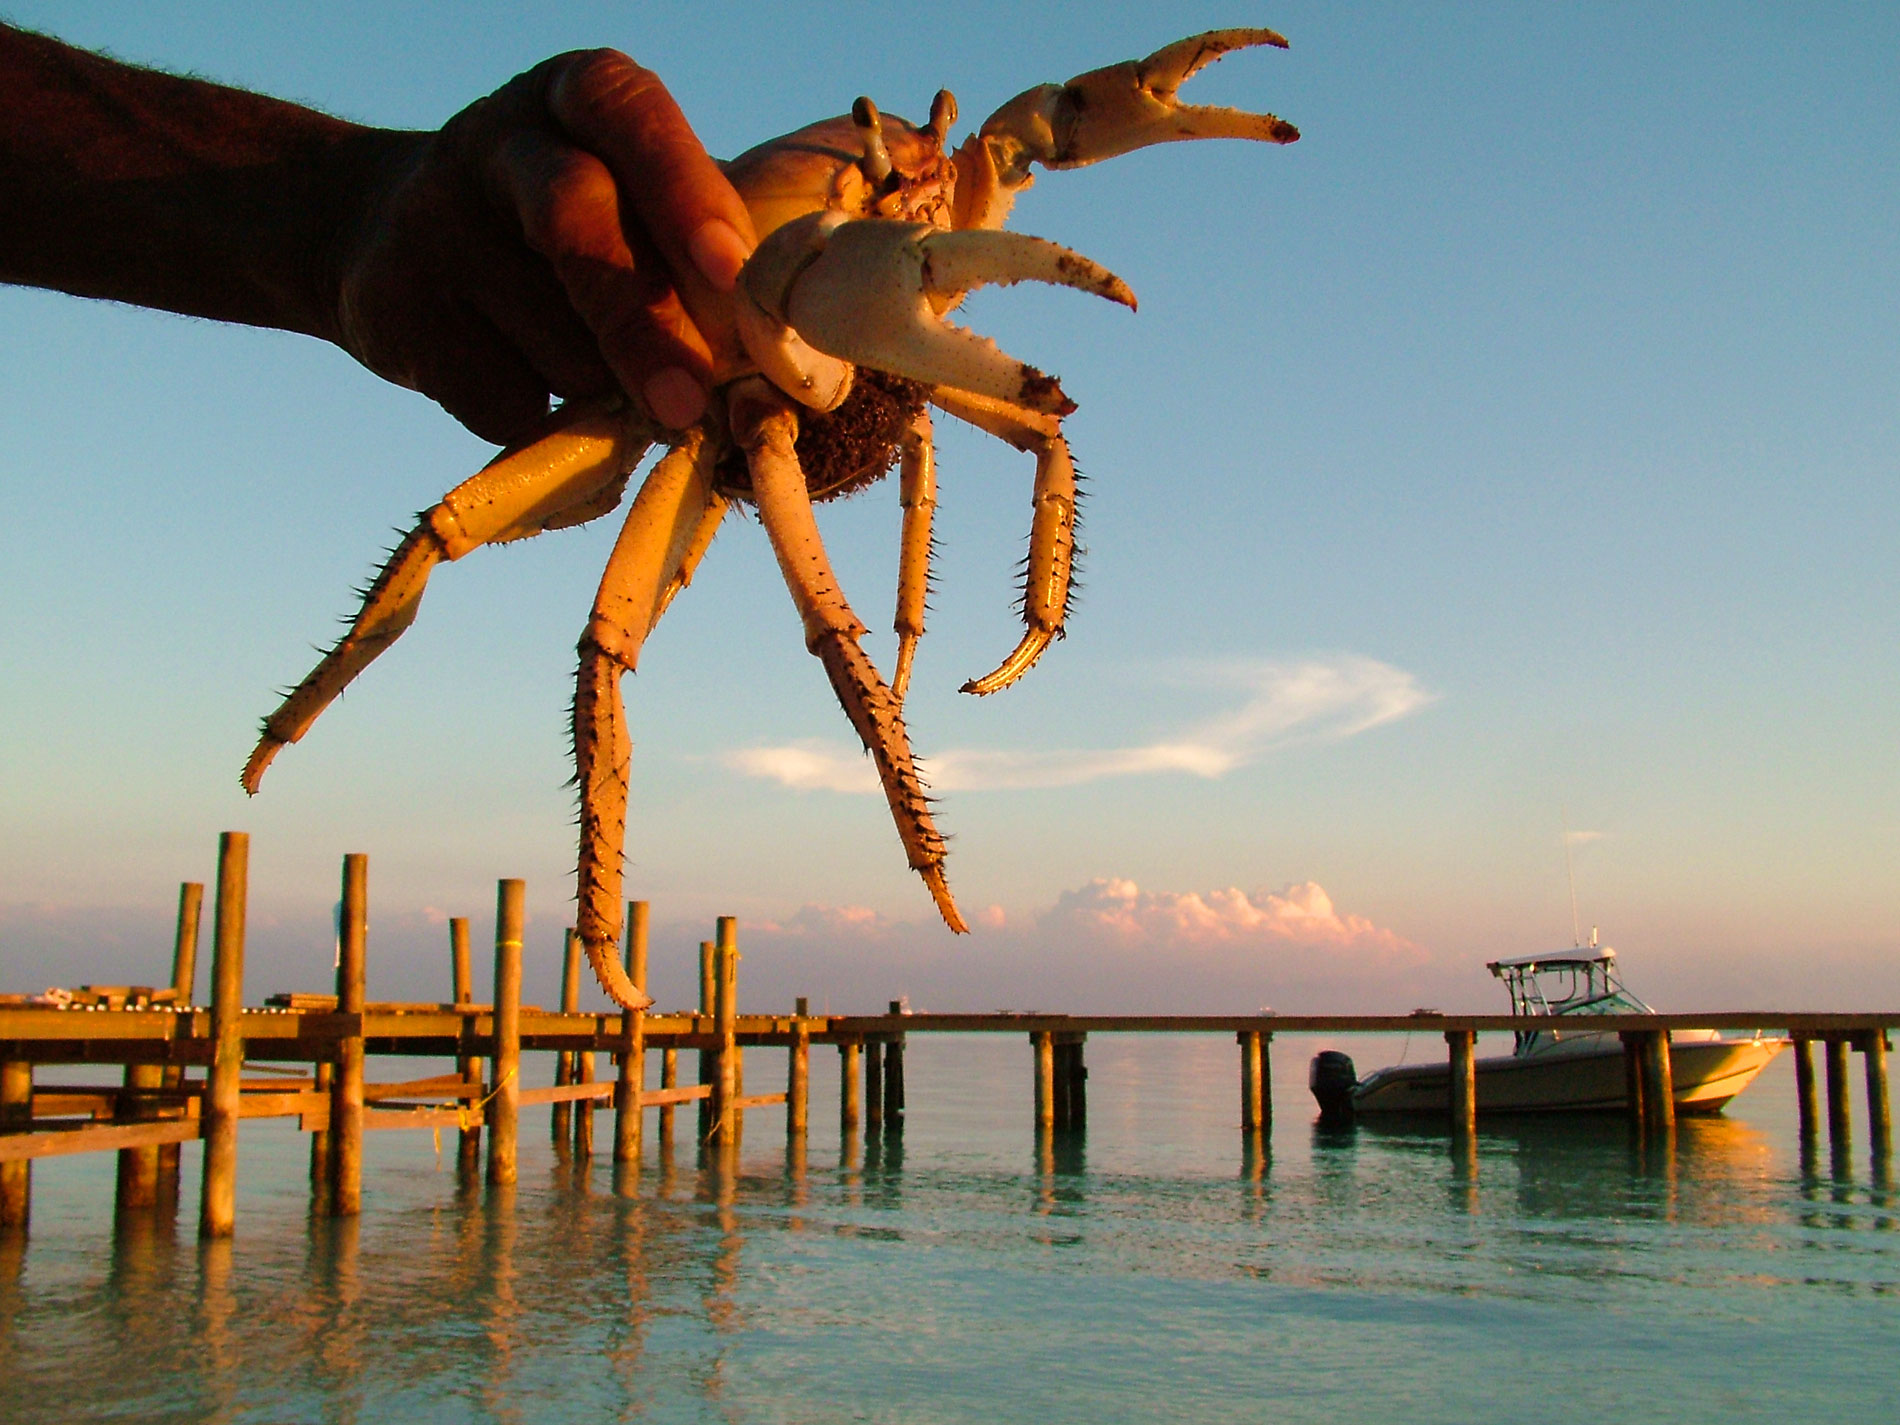 Crab with Dock Background